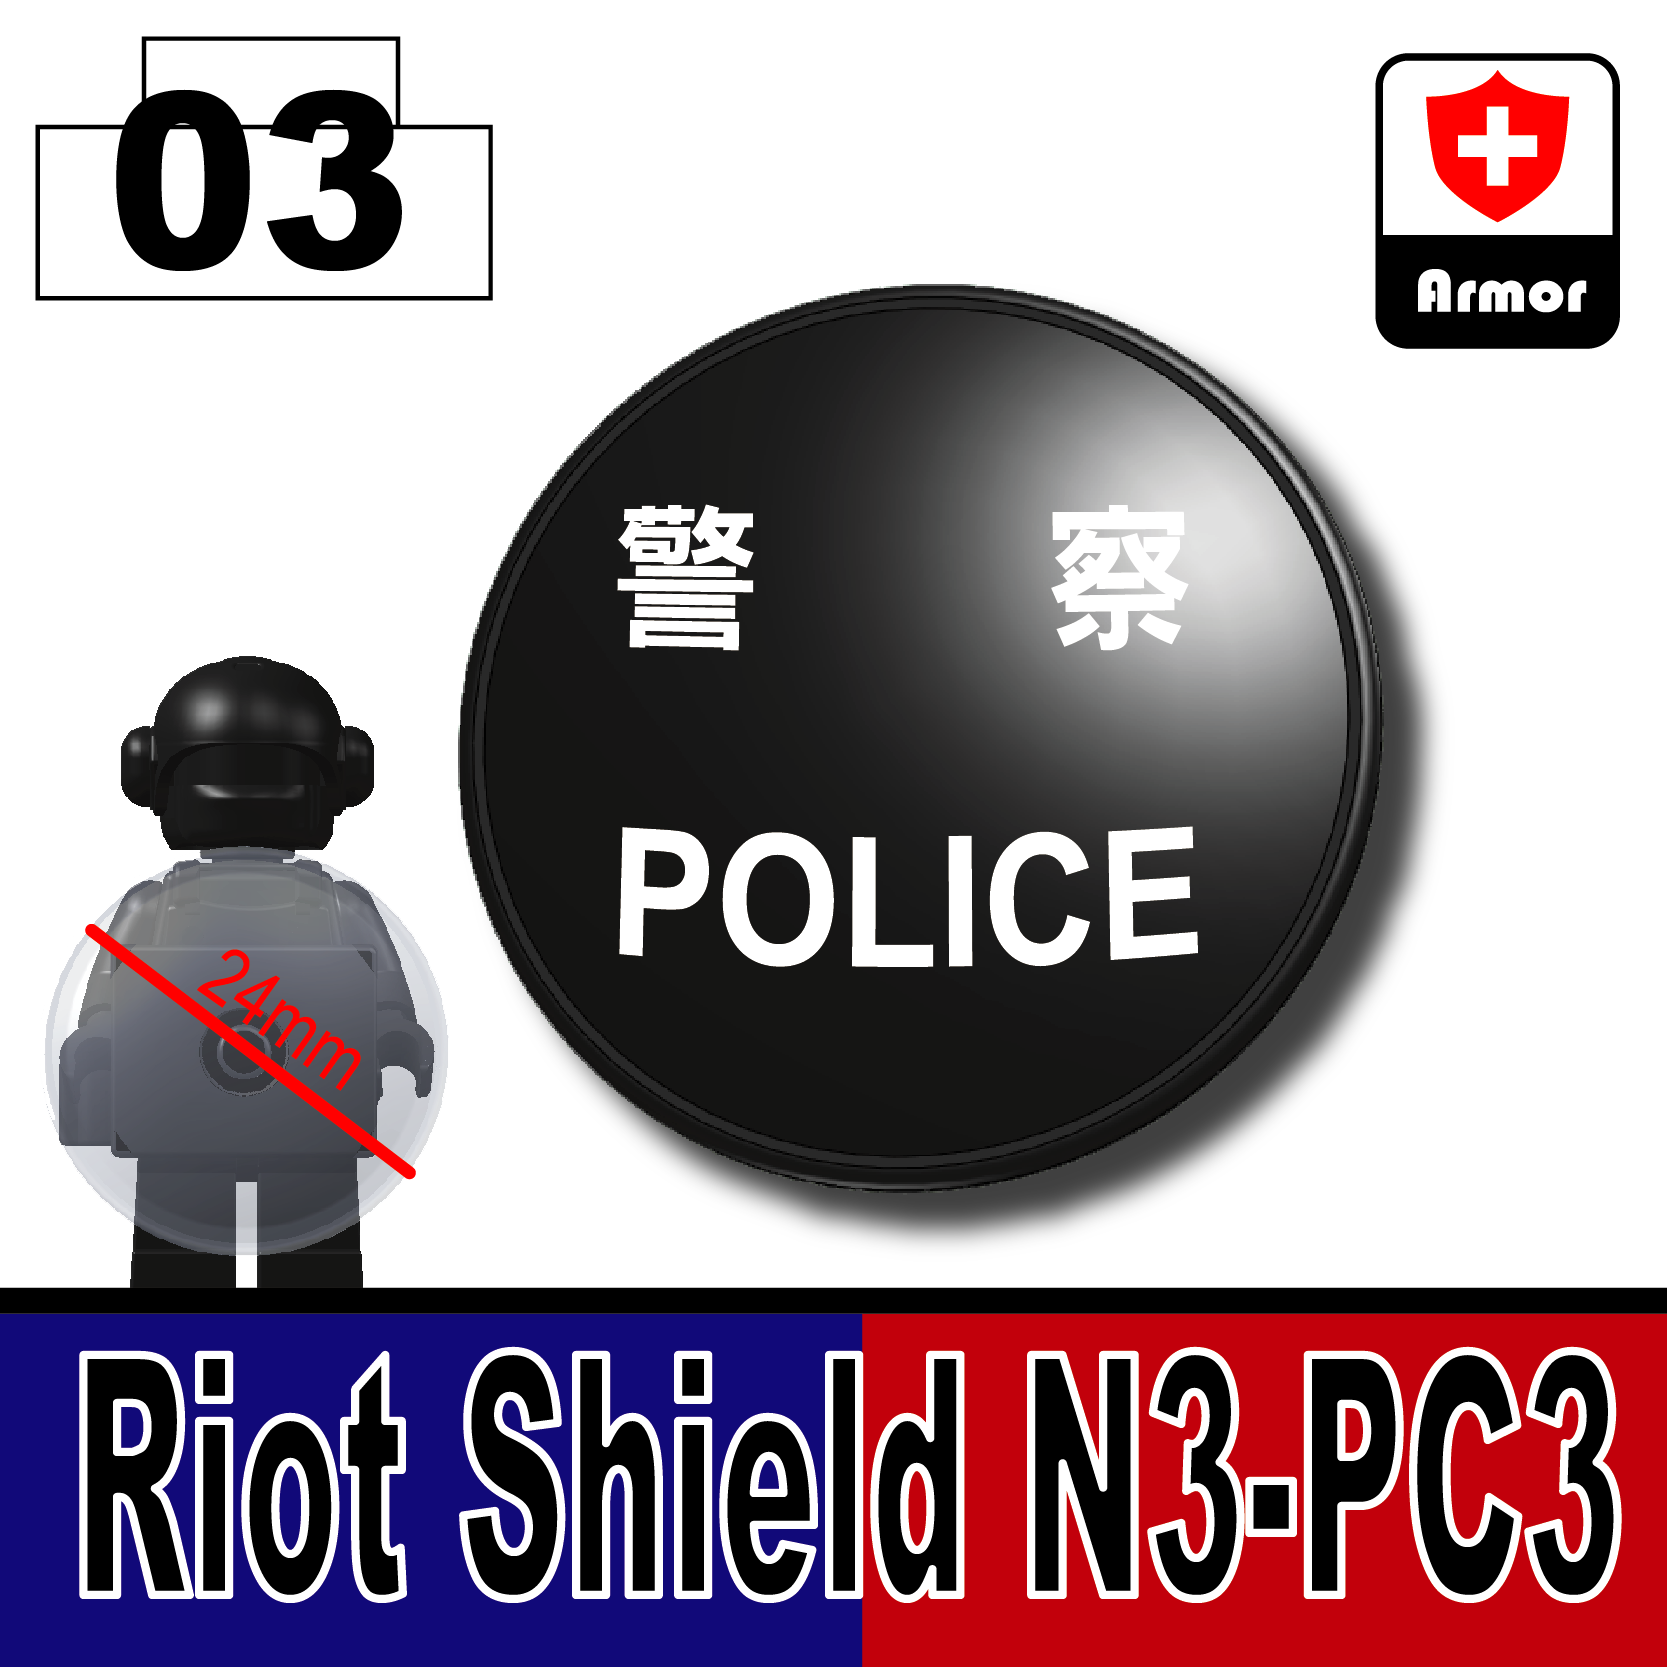 Riot Shield N3-PC3